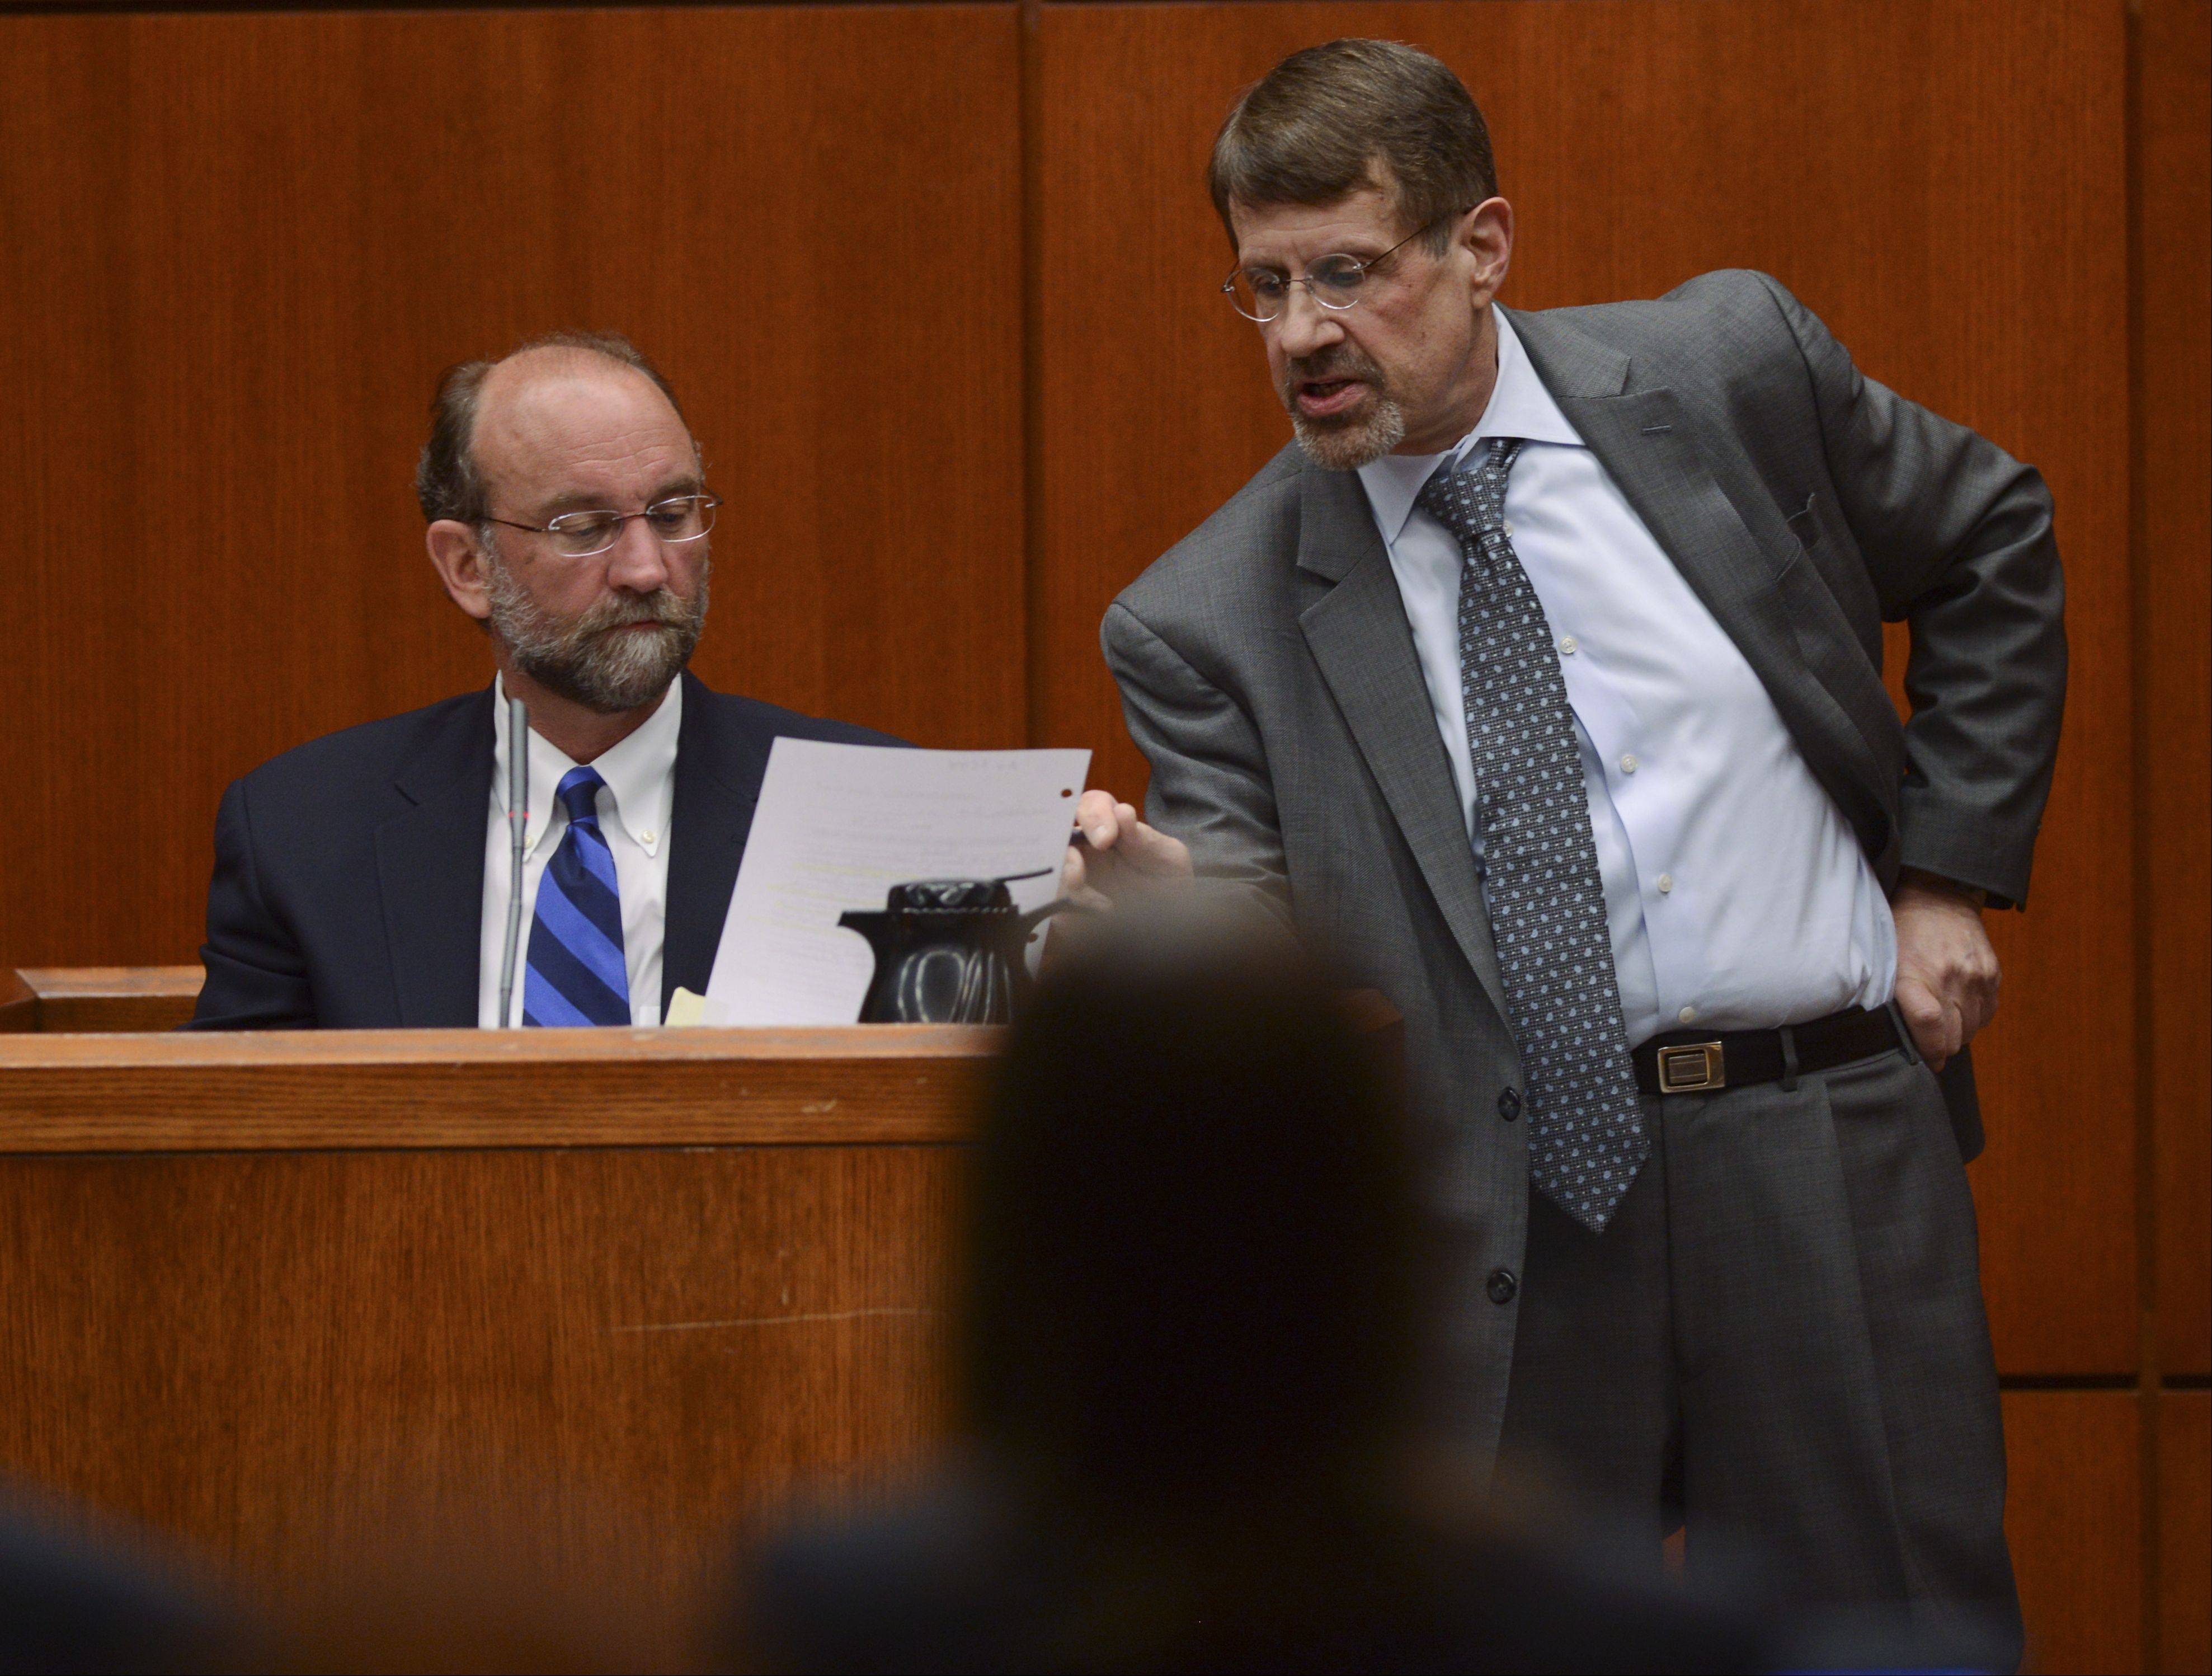 Forensic psychologist John Murray looks at a medical report handed to him by defense attorney Richard Kling as he testifies about mental state of convicted murderer Jacob Nodarse on Tuesday at the trial of Nodarse�s co-defendant, Johnny Borizov.